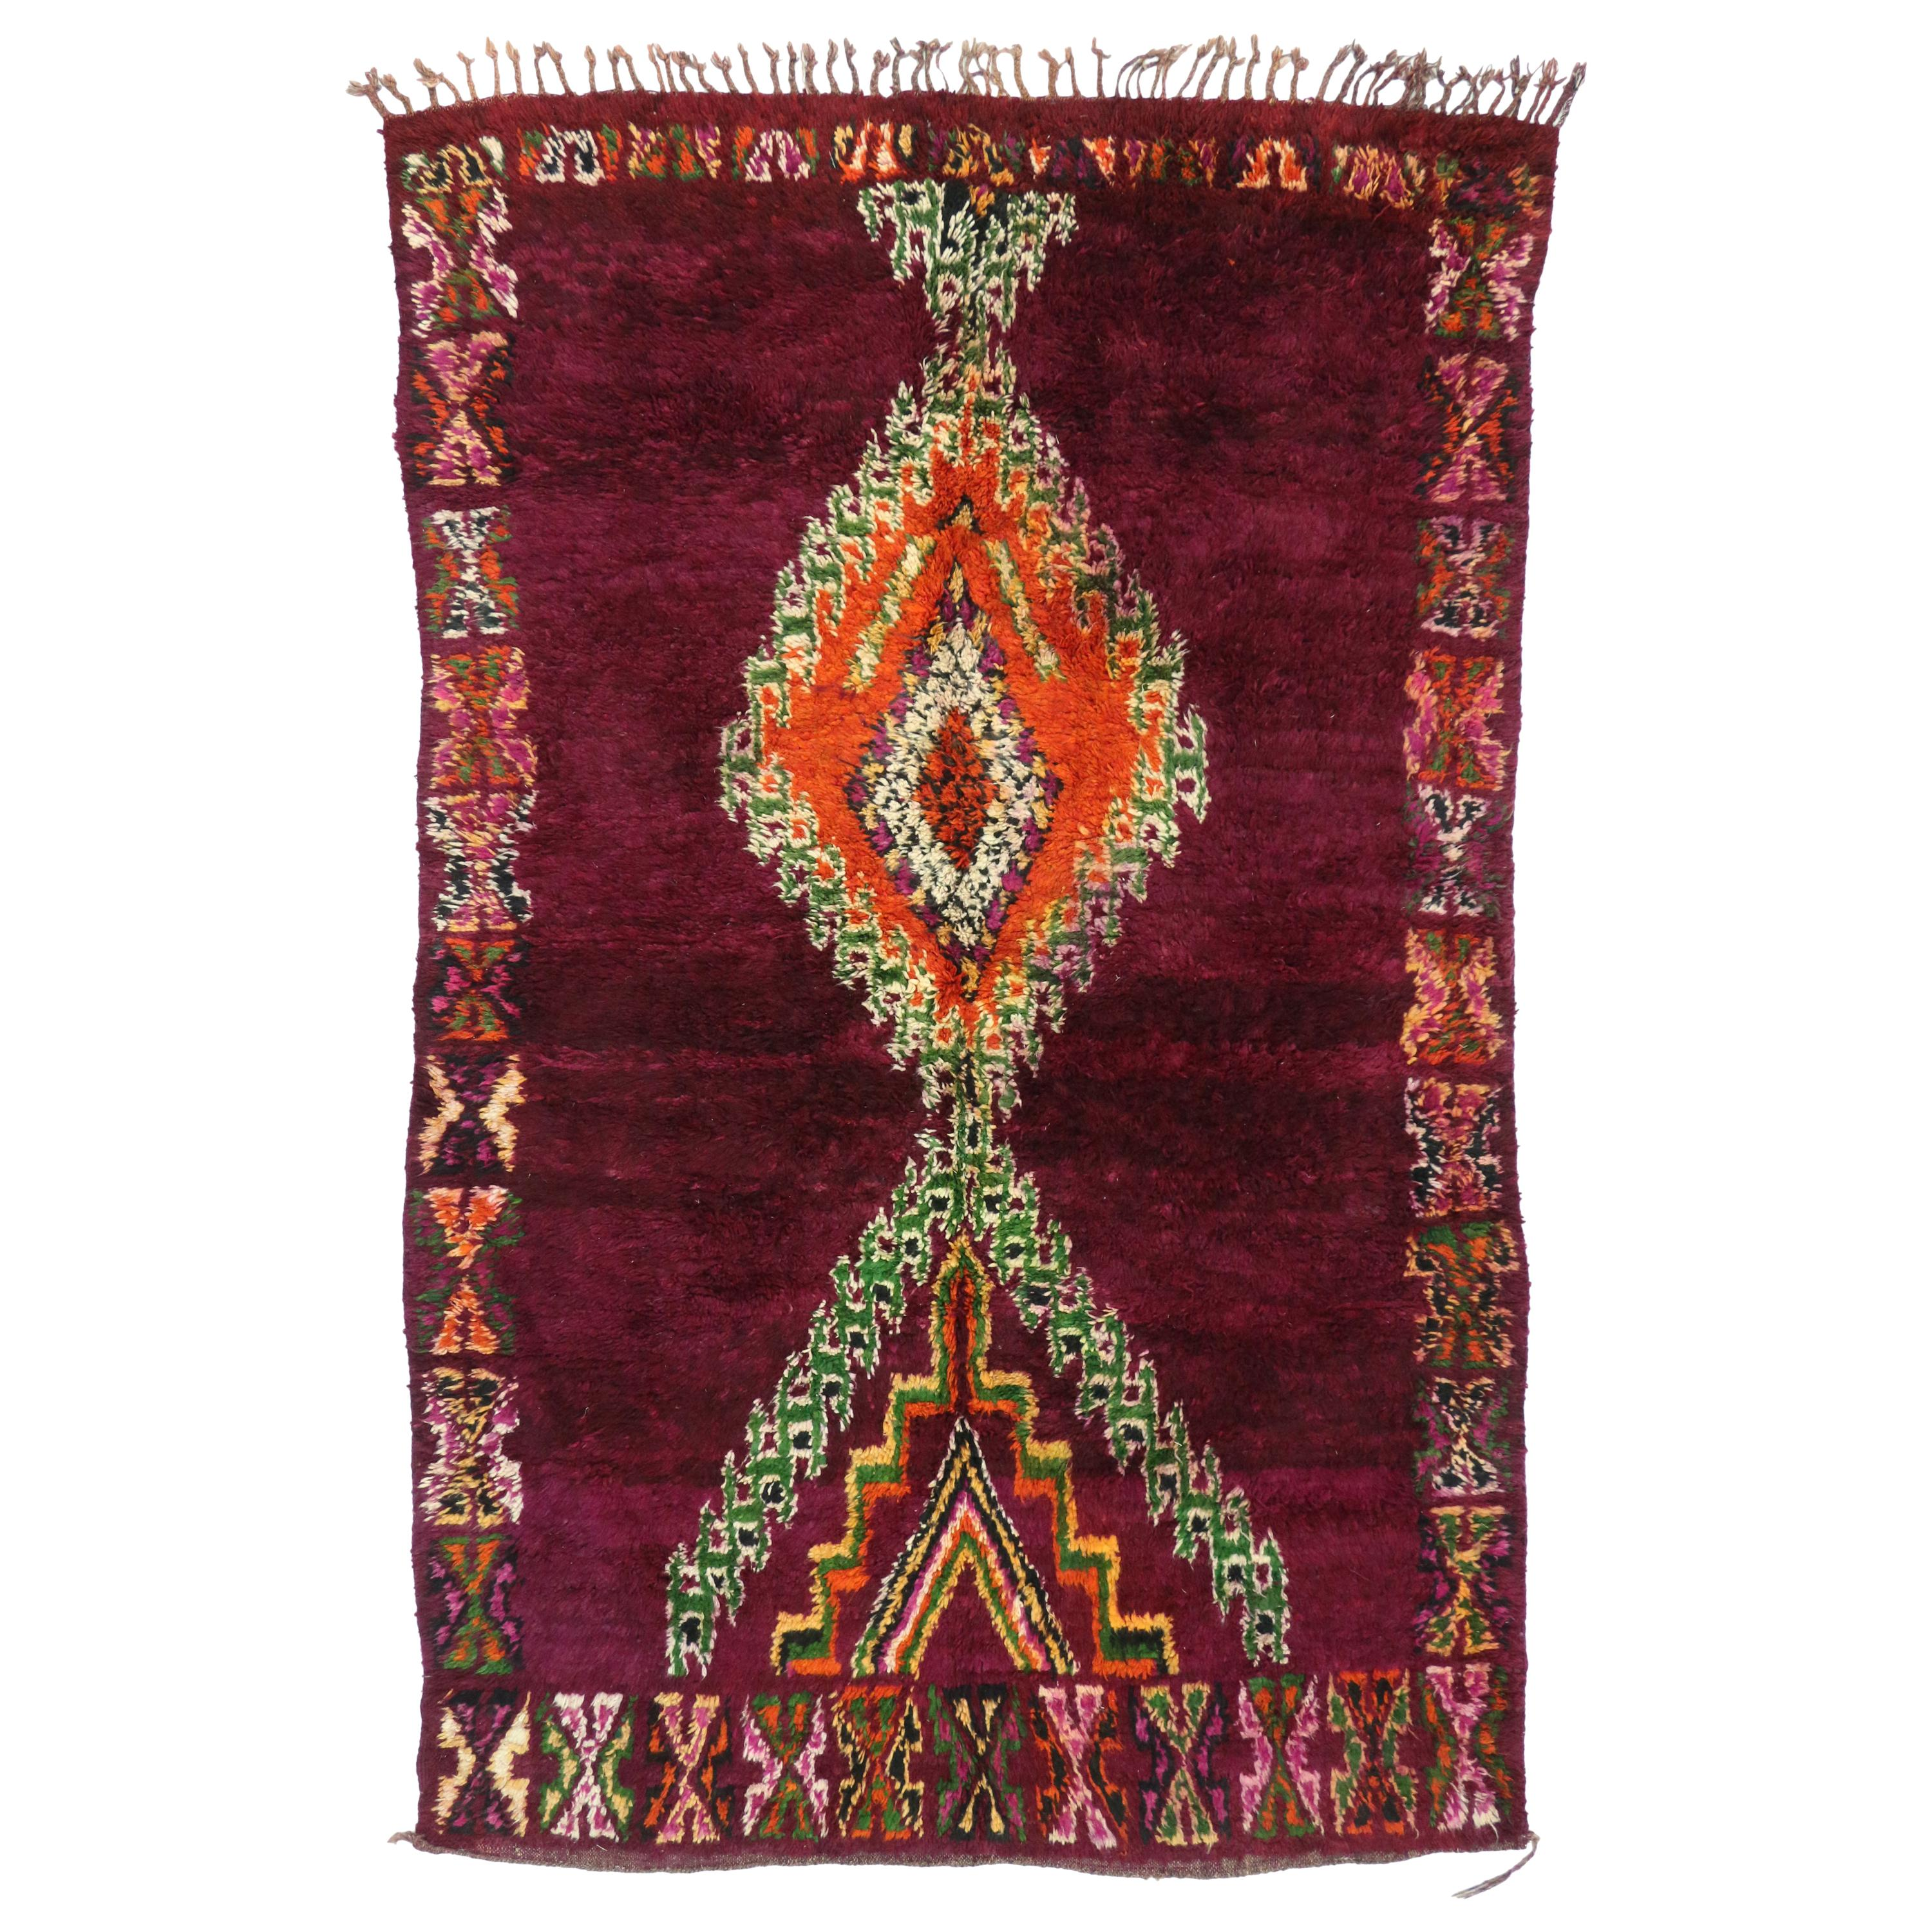 Vintage Berber Moroccan Boujad Rug with Tribal Style and Memphis Vibes